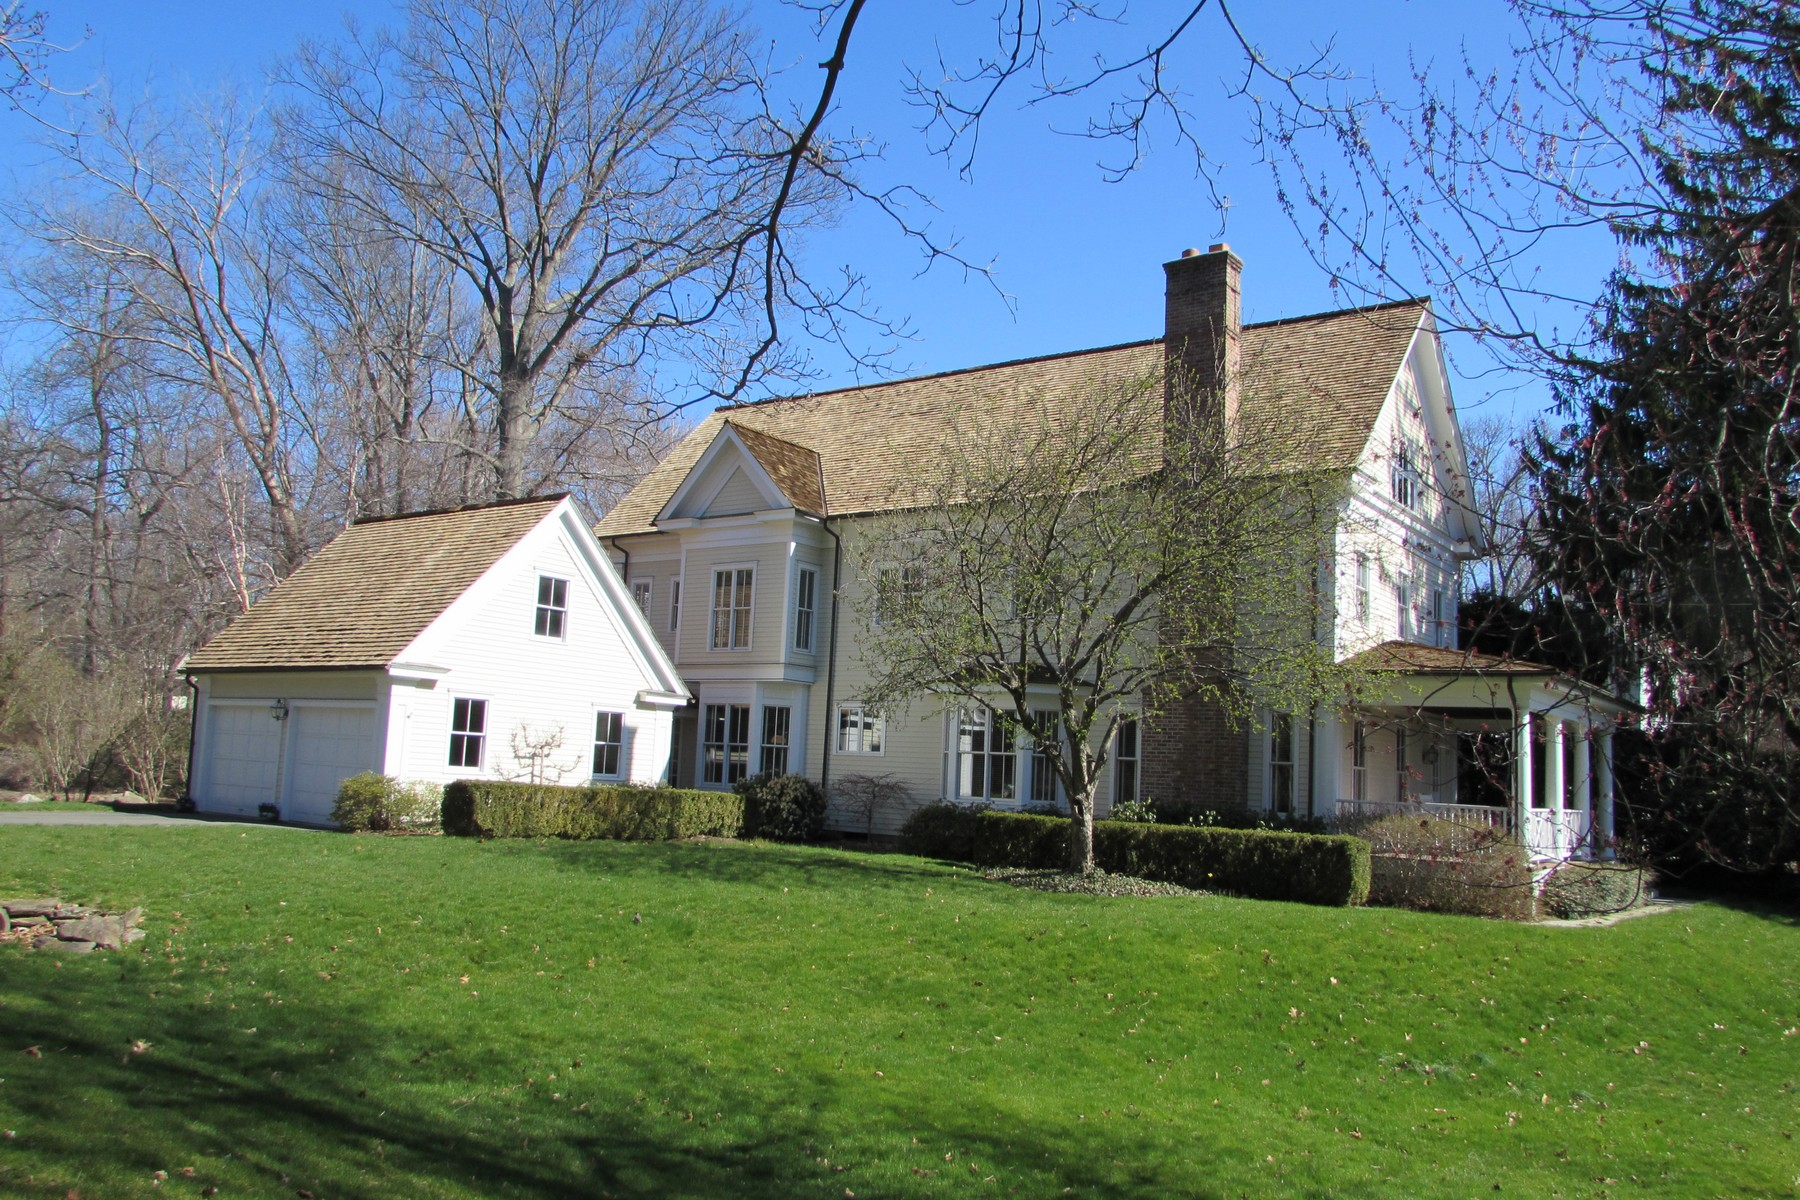 Single Family Home for Sale at Heart of Southport Village 330 Harbor Road Southport, Fairfield, Connecticut, 06890 United States